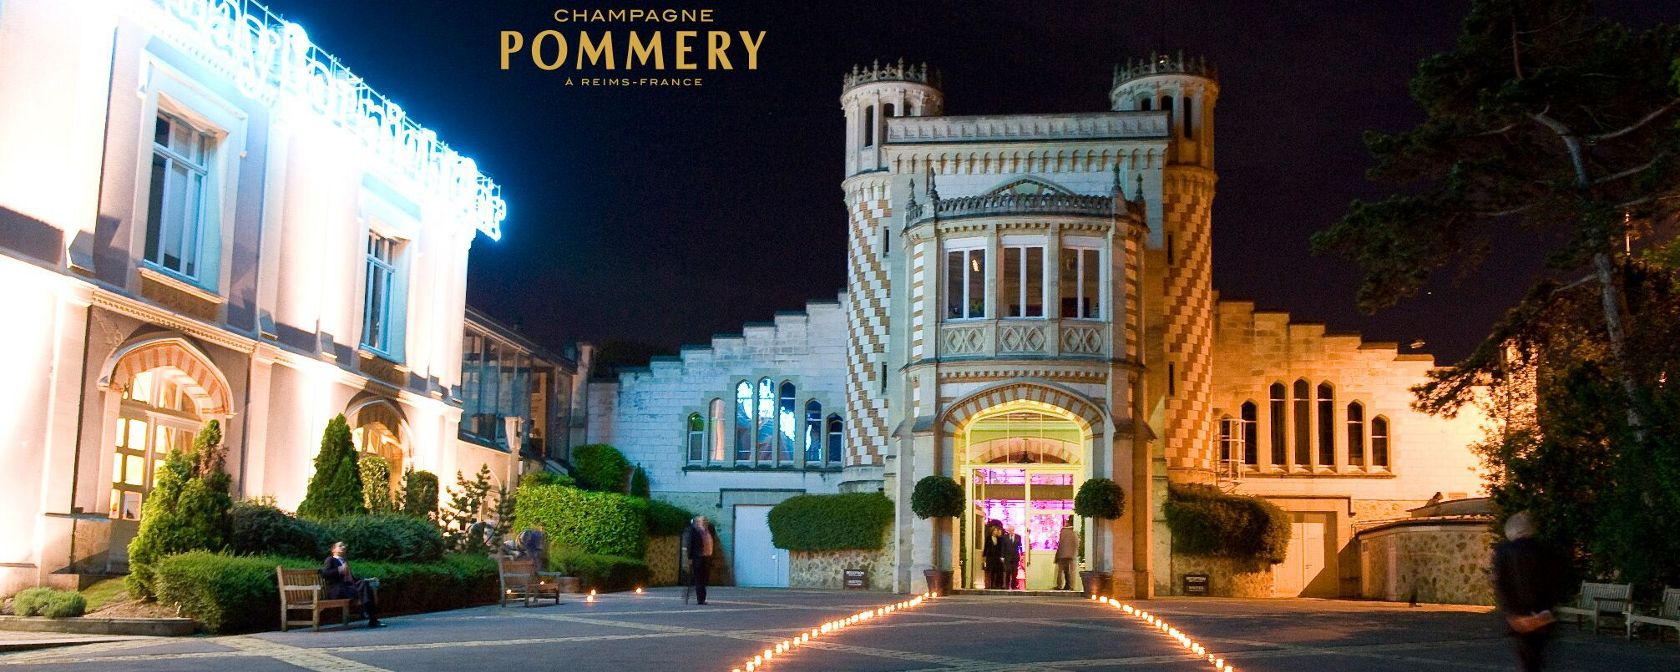 Champagne Pommery Domaine bei Nacht